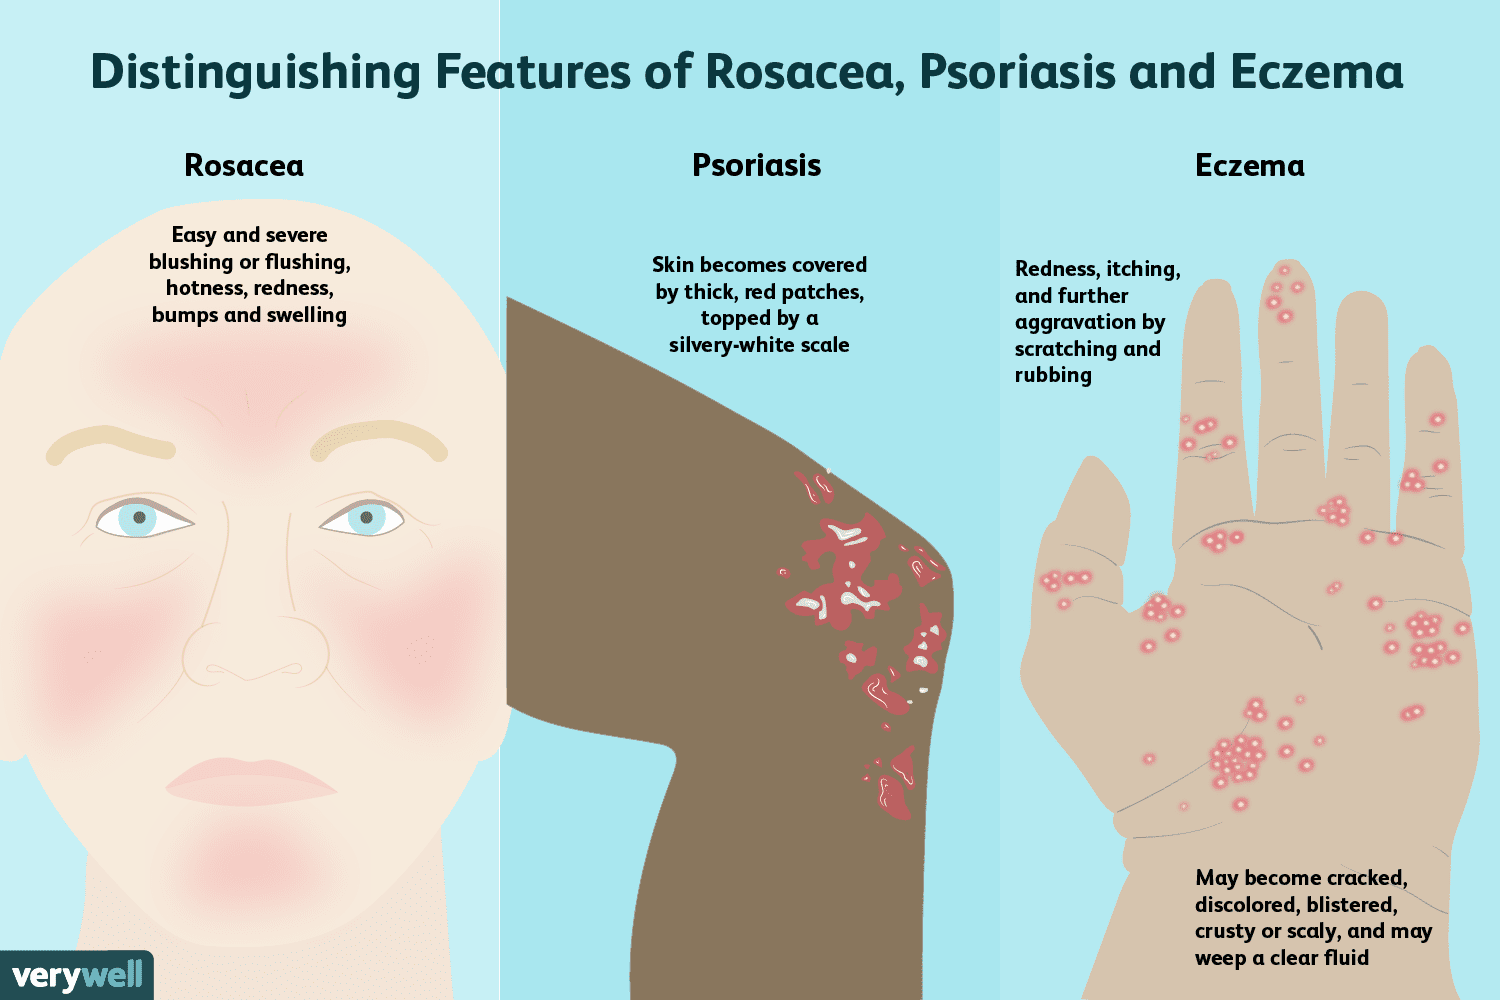 Learn If You Have Rosacea, Psoriasis, or Eczema